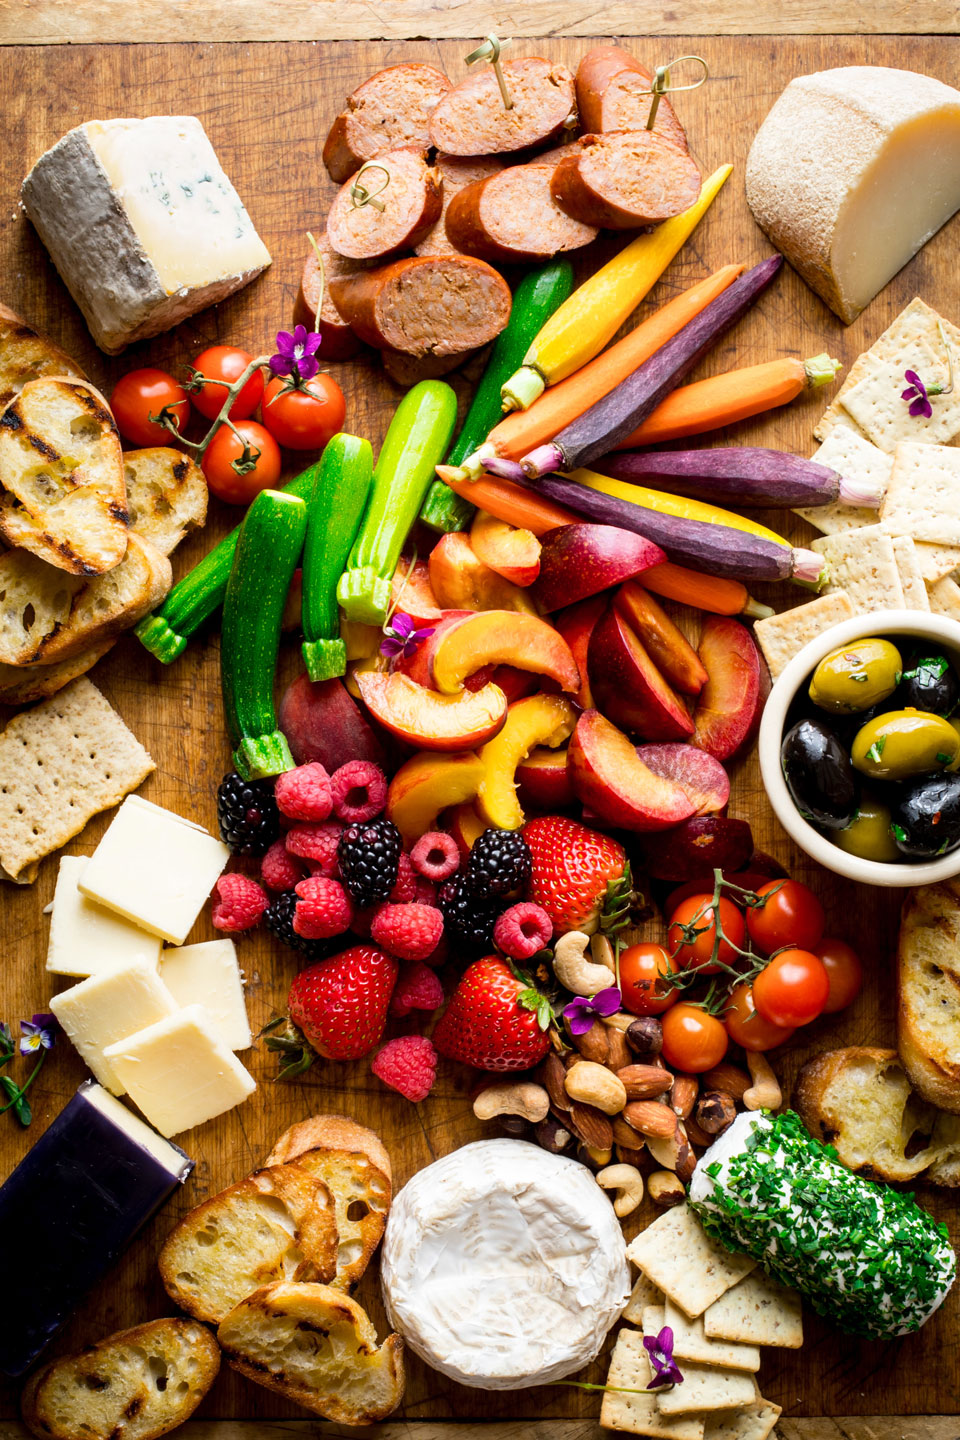 Cheese board with nuts